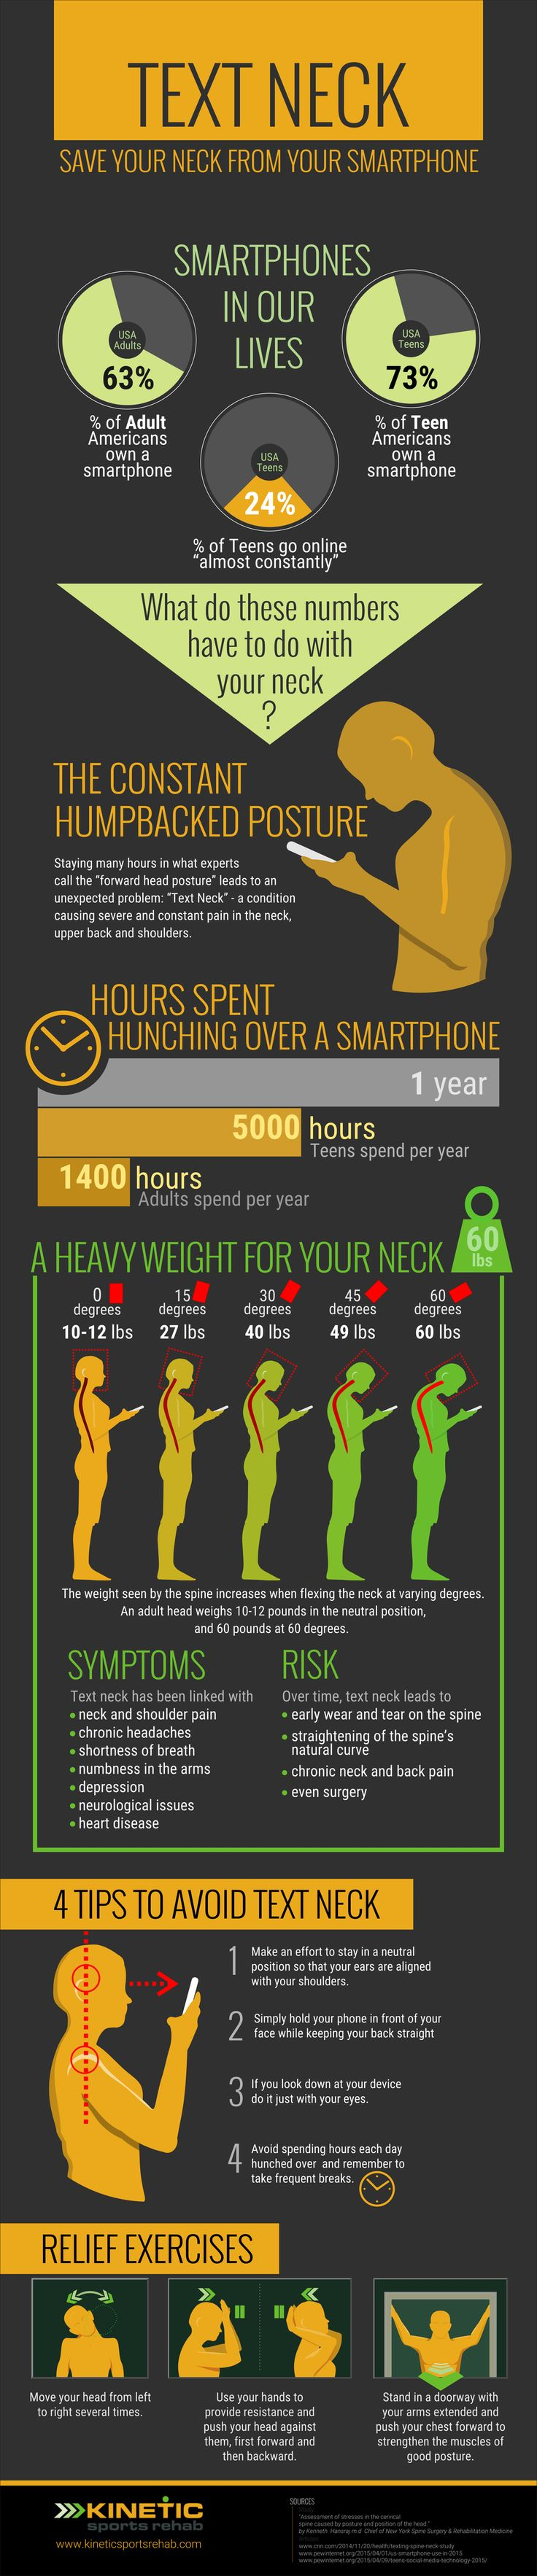 Text neck - the scourge of millennials everywhere!